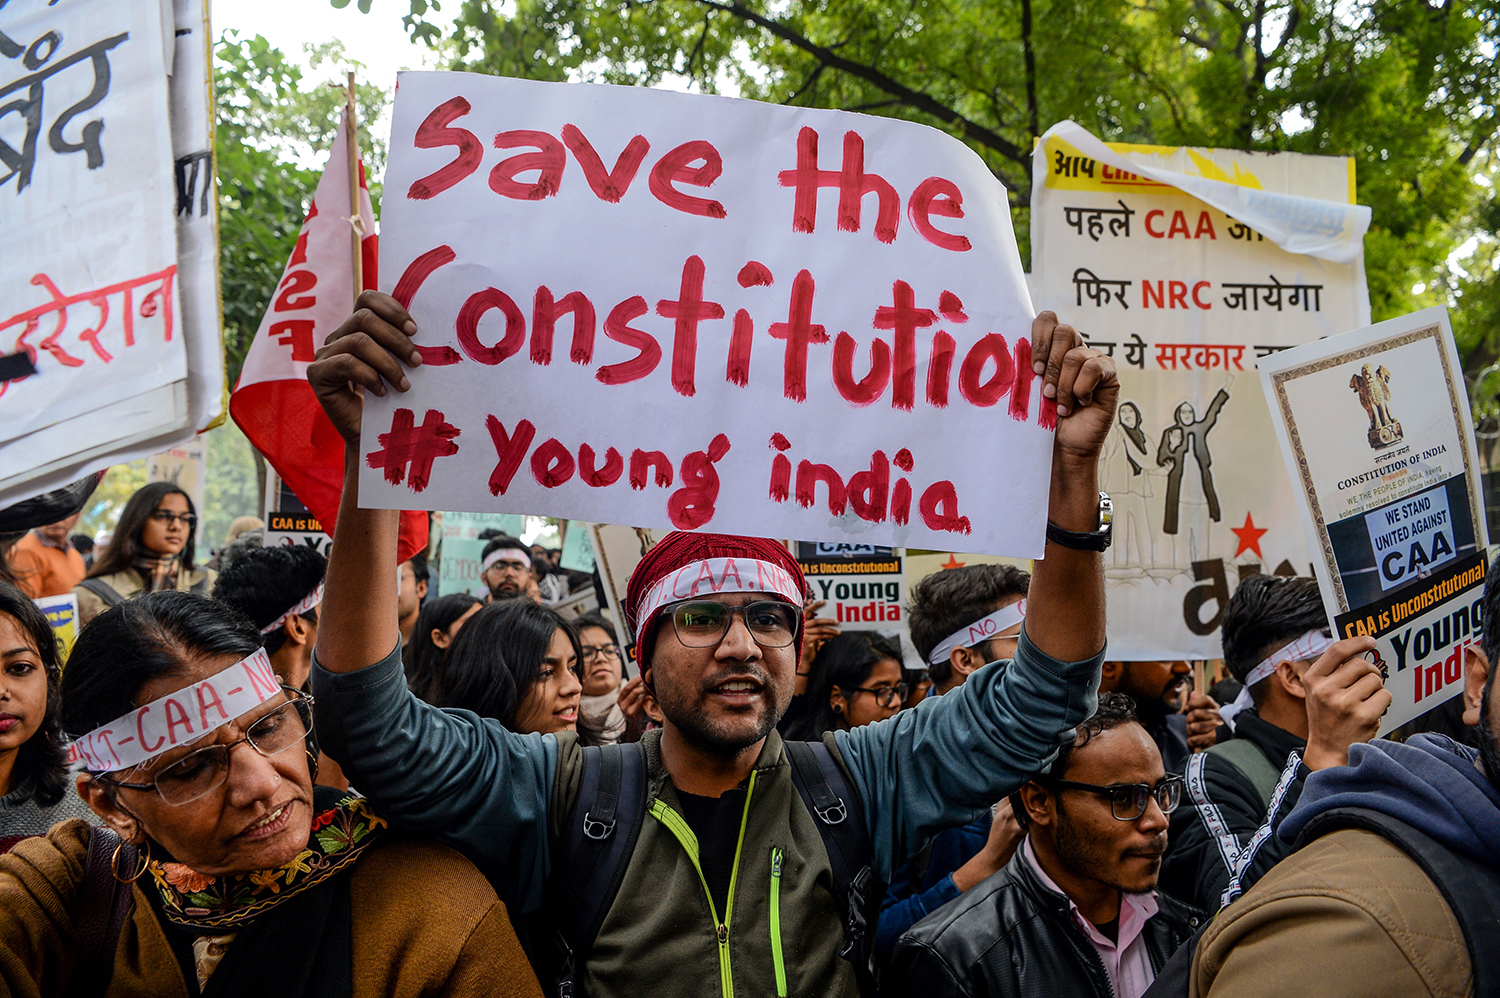 A man holds a placard during a protest against India's new citizenship law in New Delhi on Jan. 20. SAJJAD HUSSAIN/AFP via Getty Images